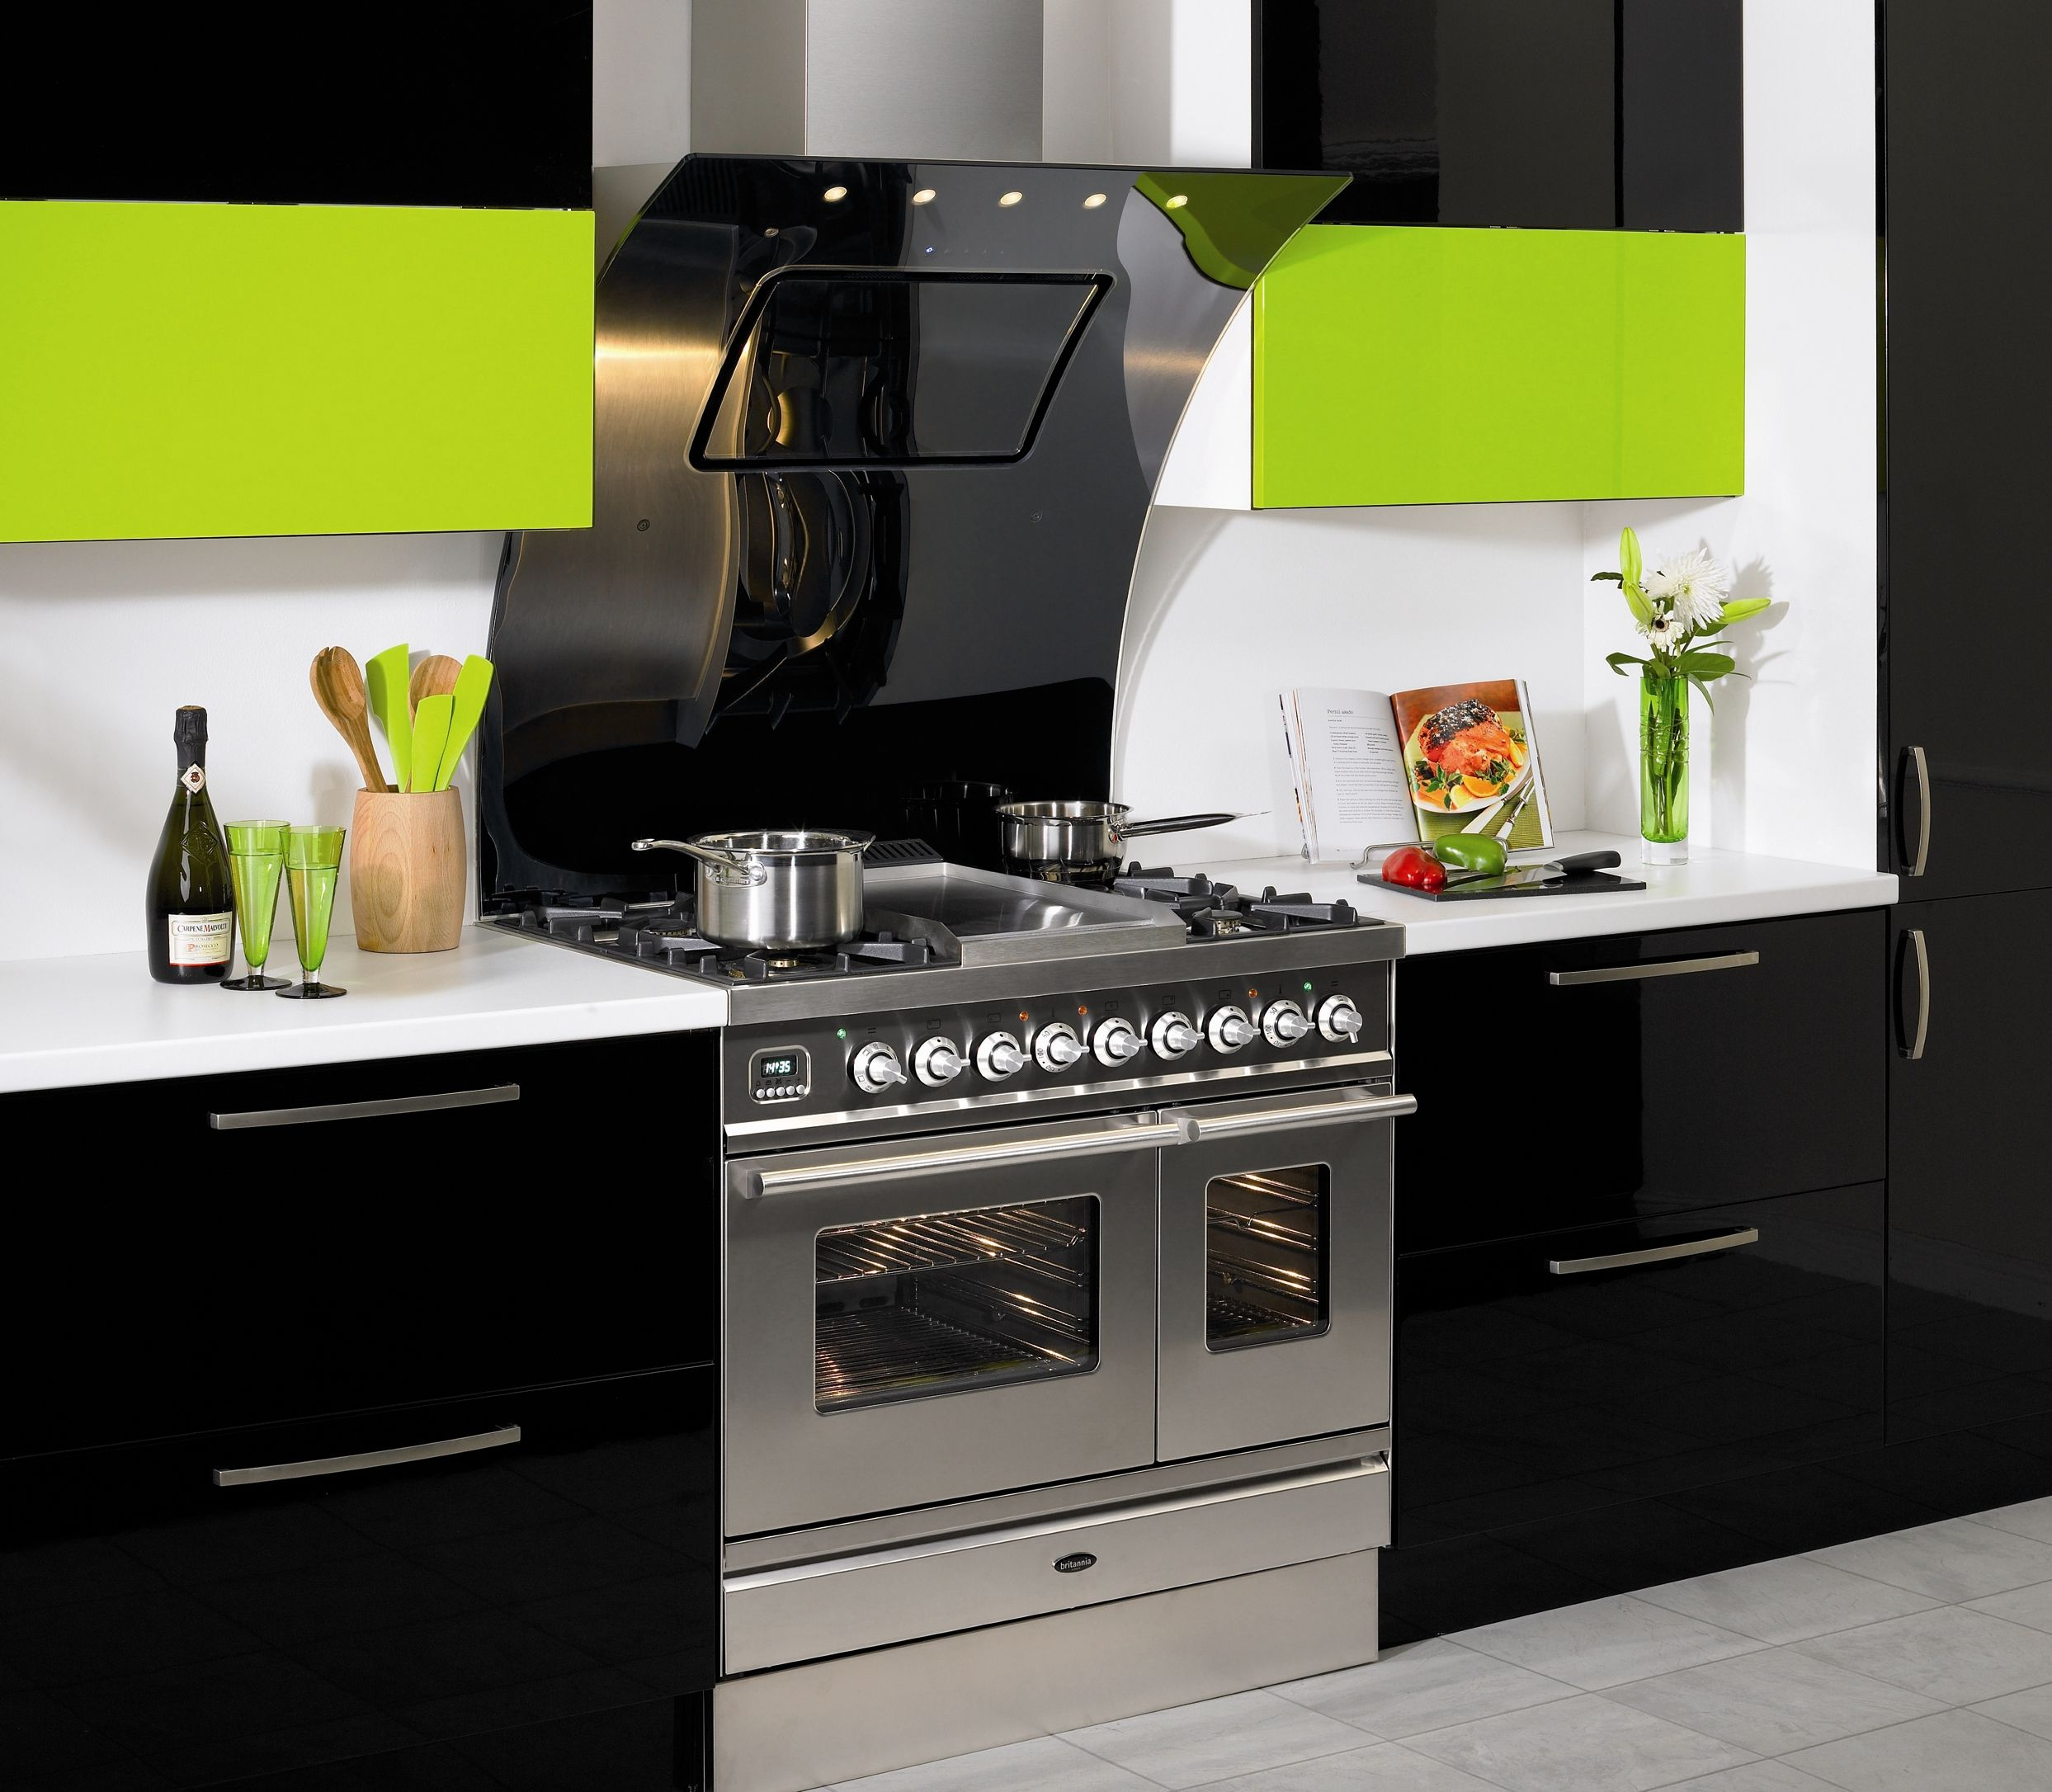 Fabulous Latest Trends In Kitchen Design With Contemporary Built - Kitchen hood design